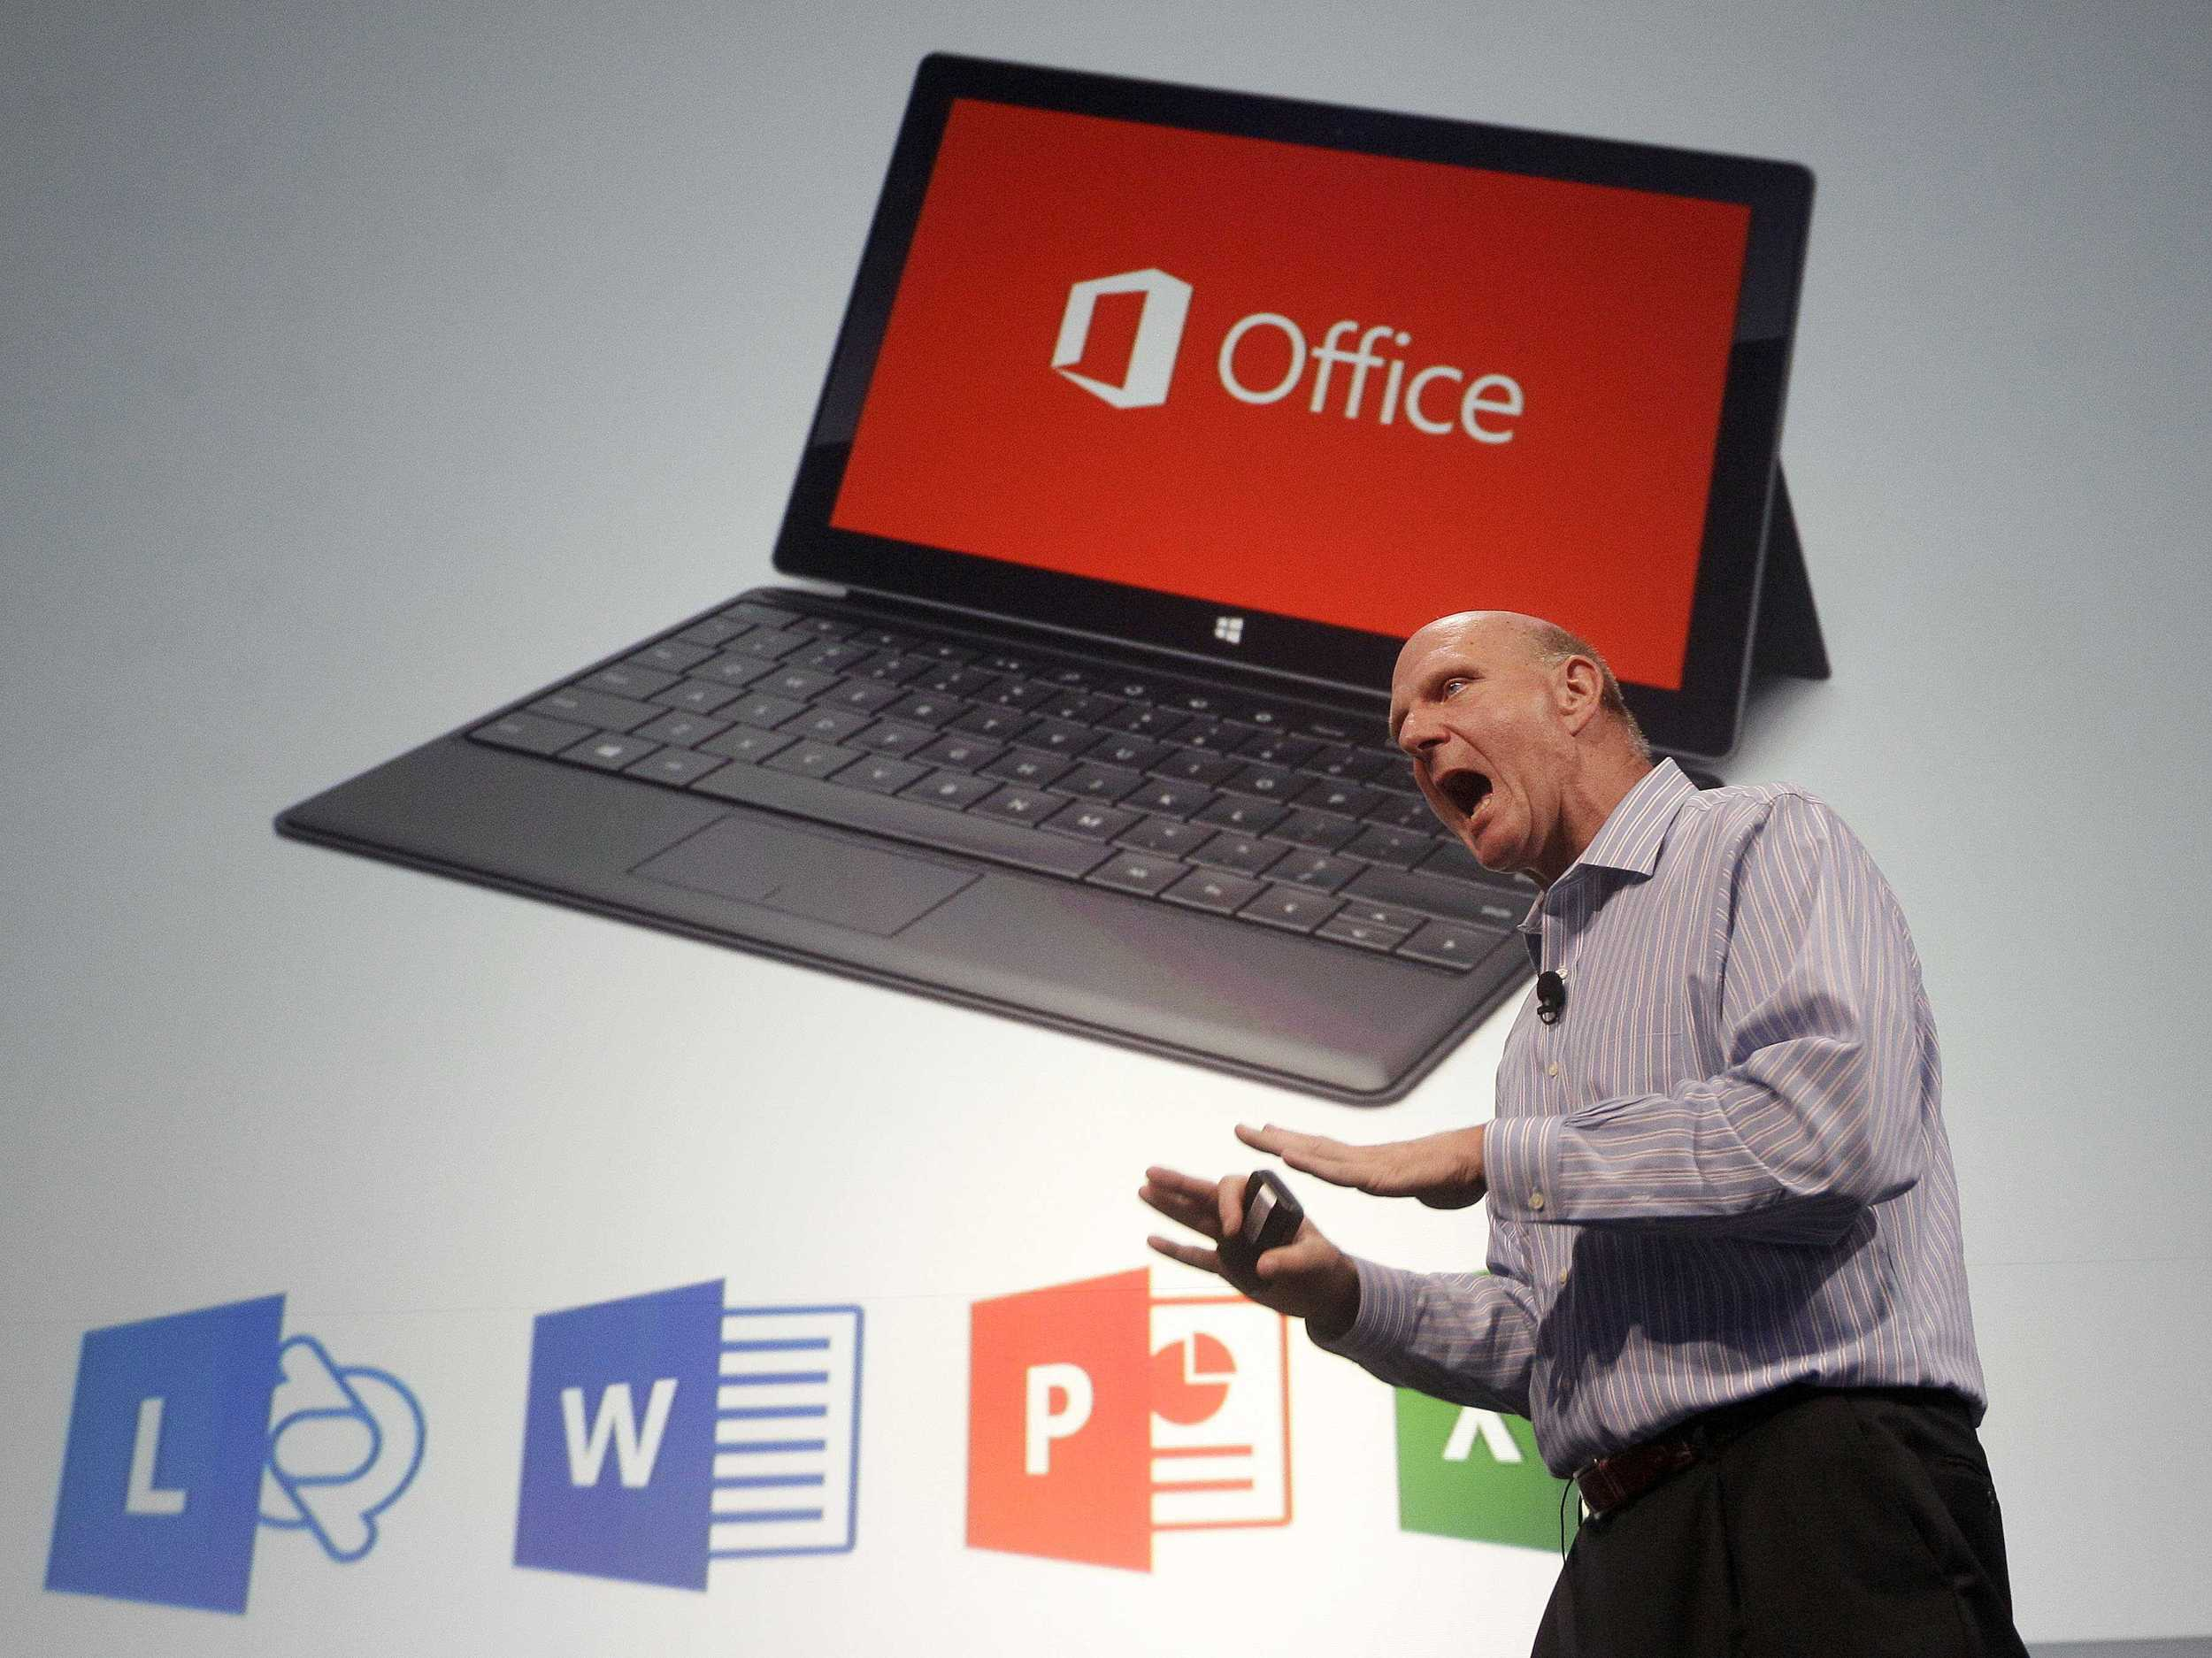 microsofts-900-million-charge-for-the-surface-rt-is-embarrassing-but-it-was-still-the-right-decision-for-the-company.jpg